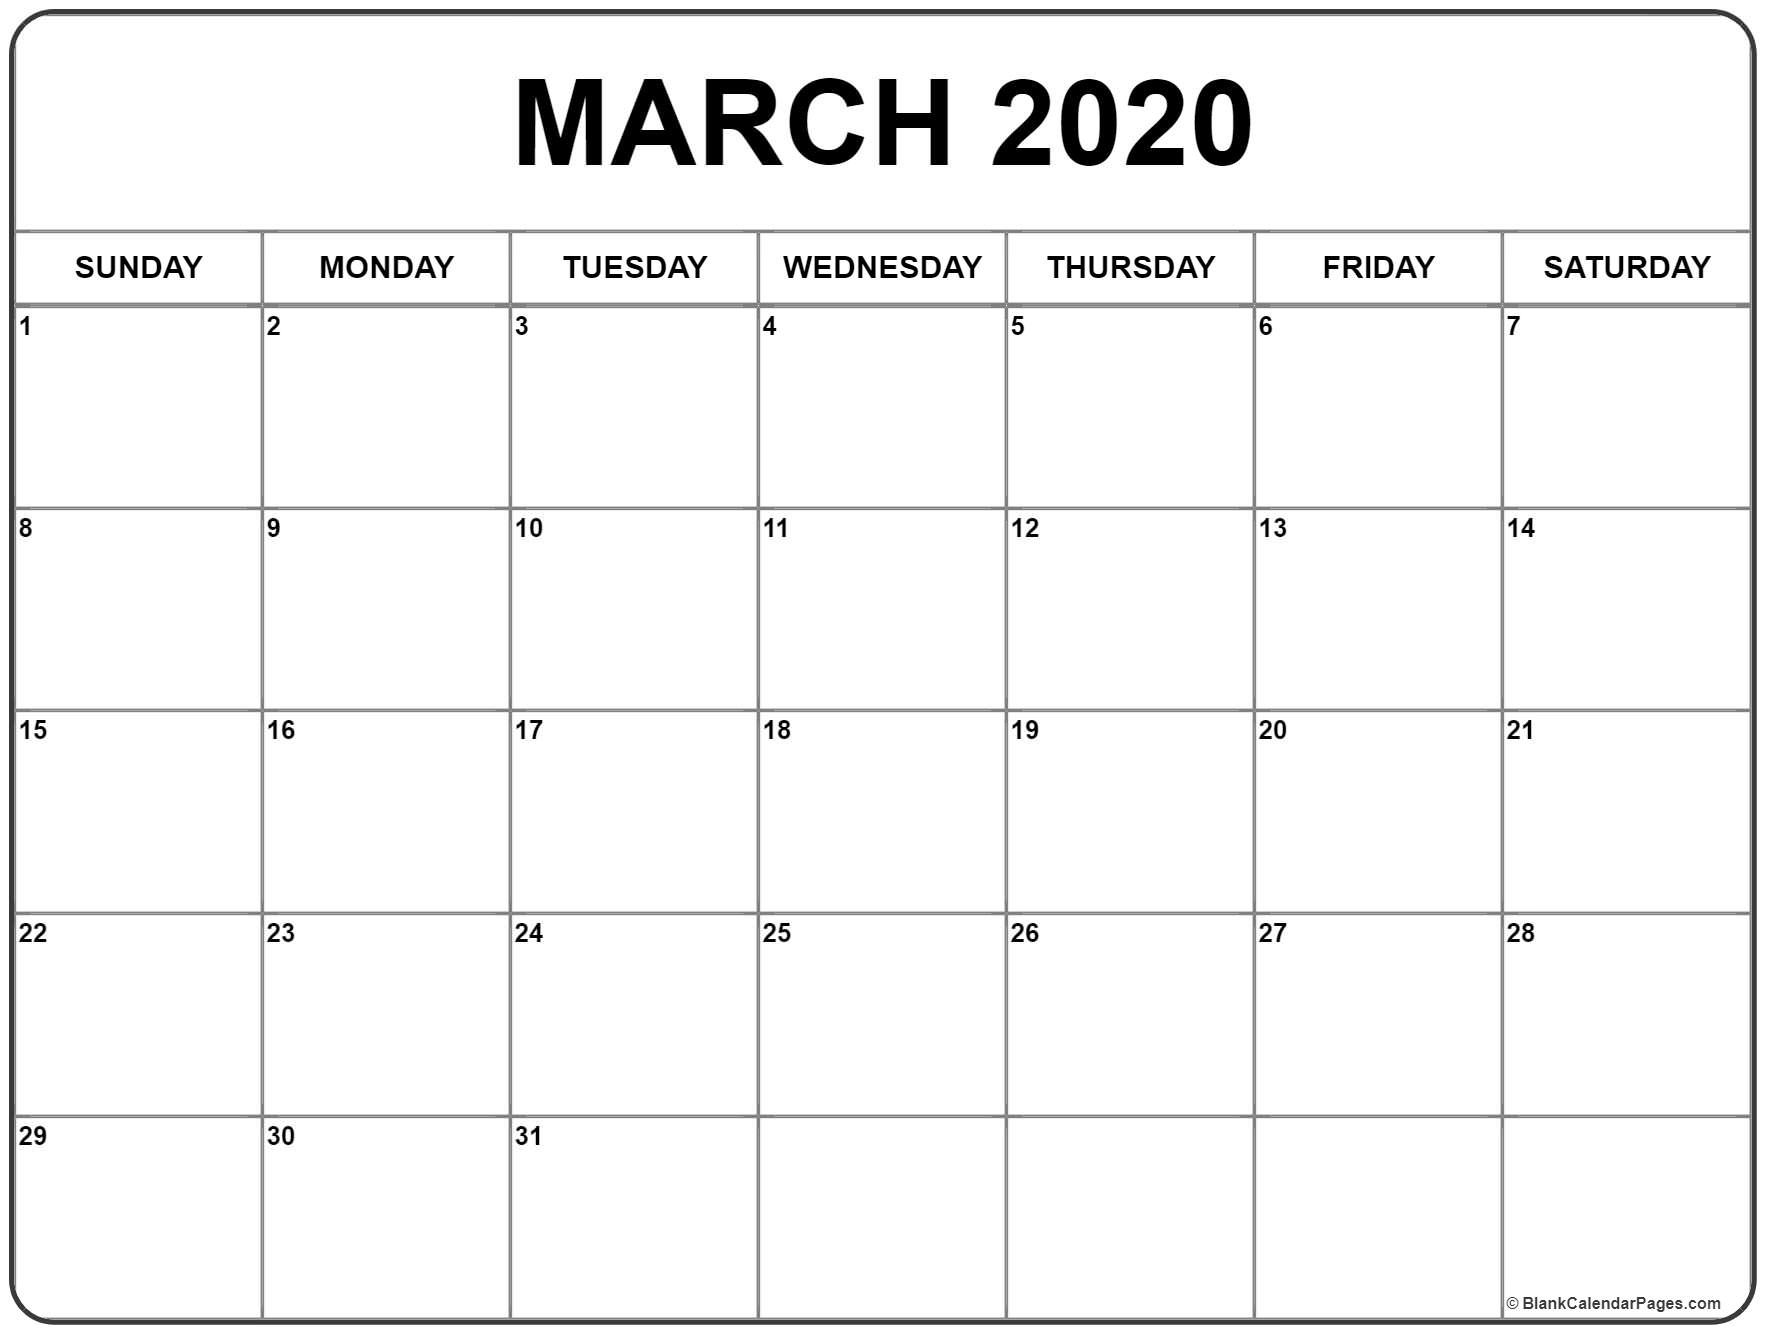 Blank Calendar Pages February And March 2020